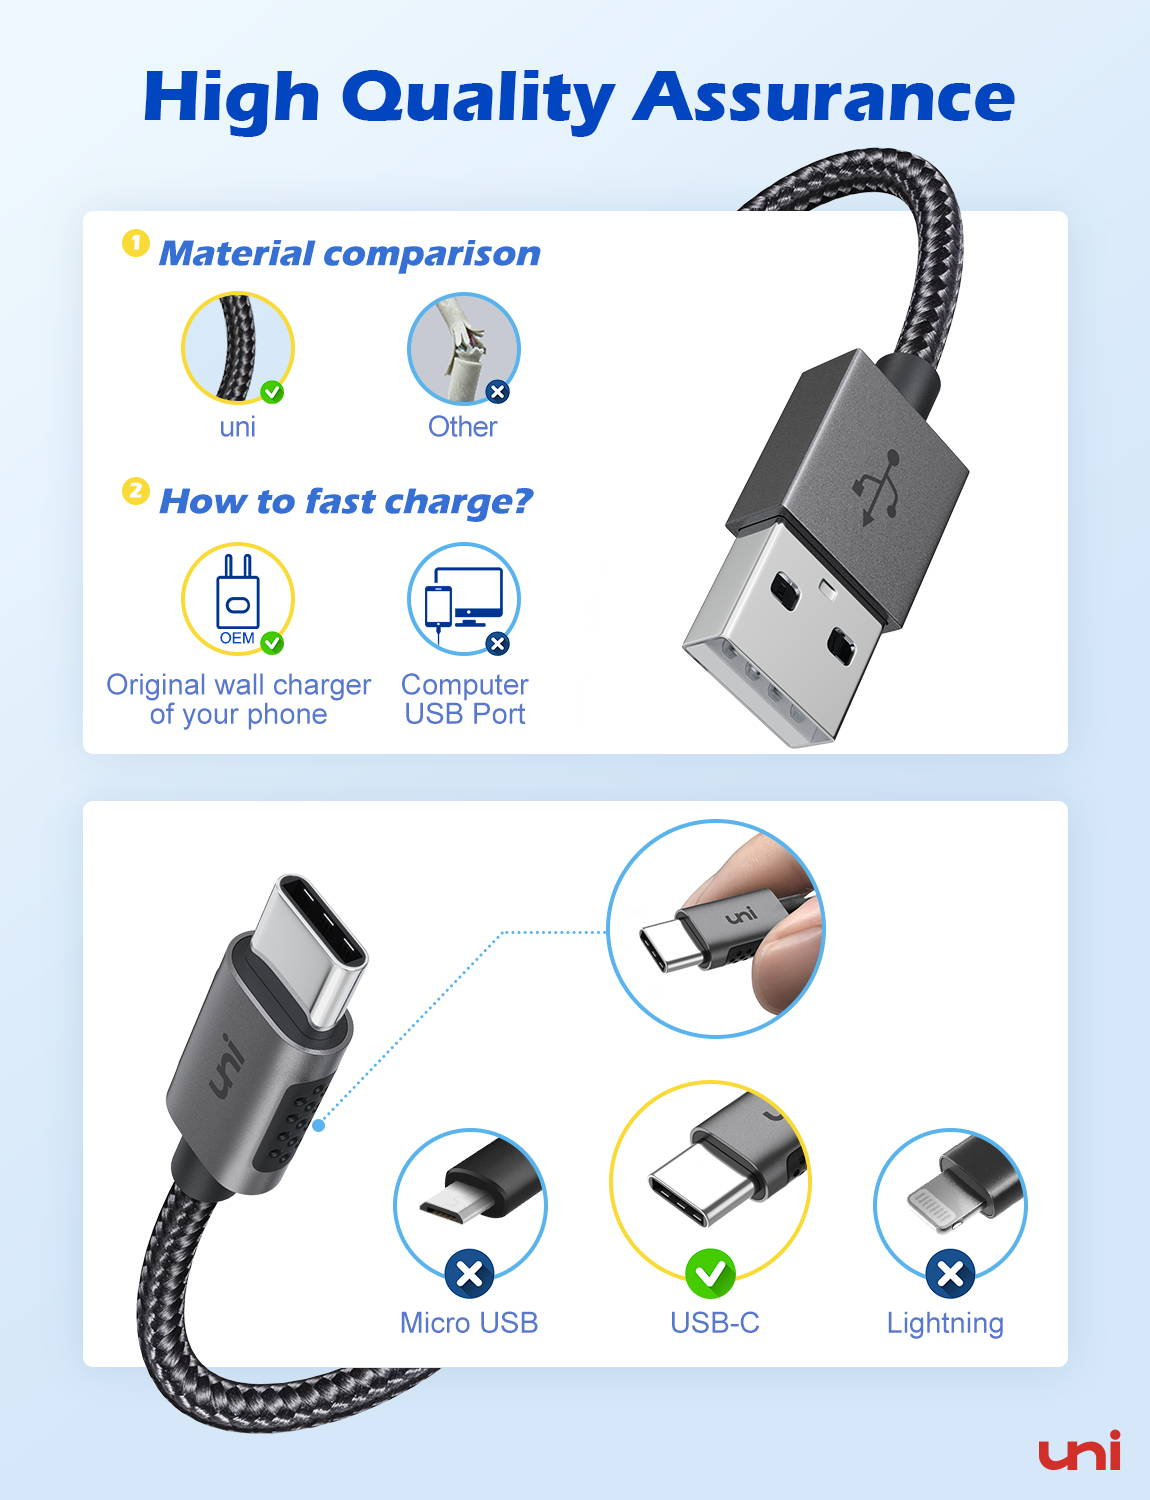 Charge cable for Samsung Galaxy, Sony wh-1000xm3, Macbook Pro, Google Pixel, iPad Air 2020, Nexus, LG, Sony Xperia XZ/XZ2, Moto, HTC, PS5 Controller, Nintendo Switch